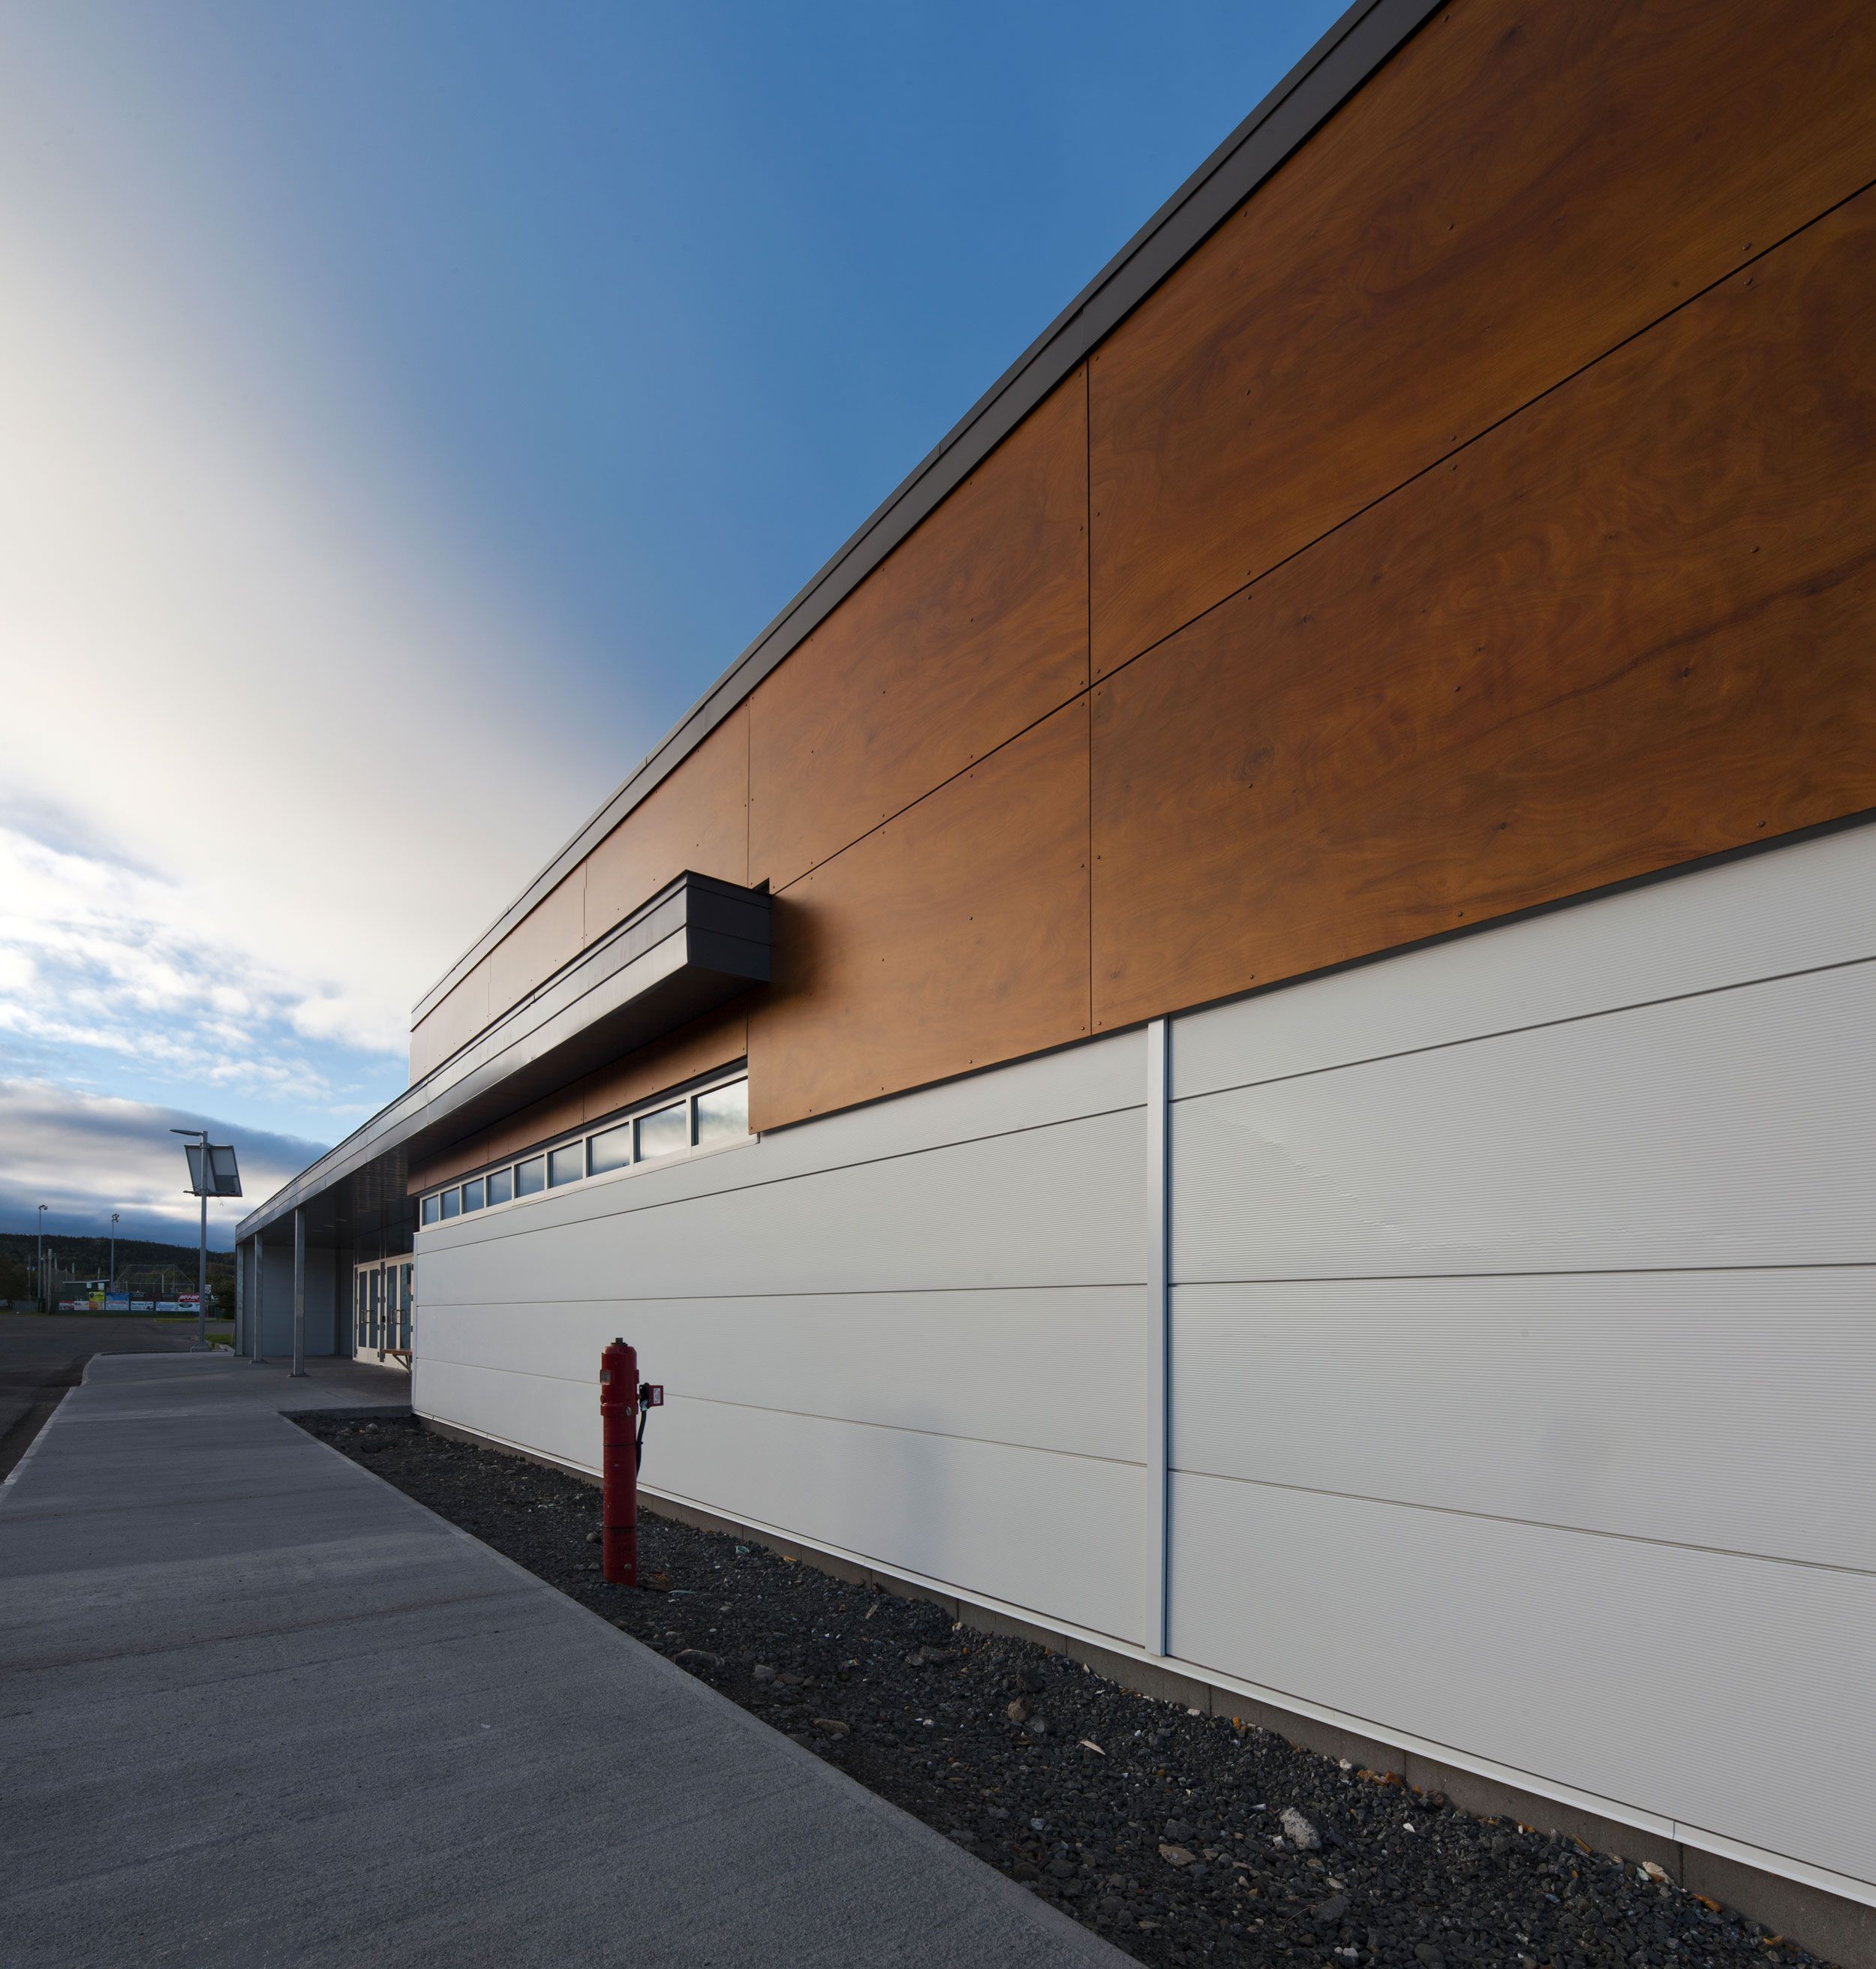 Facade Is A High Density Laminate Timber Panel For Exterior Cladding With  No Maintenance. The Outer Layer Is Highly Resistant And Features A Unique  ...